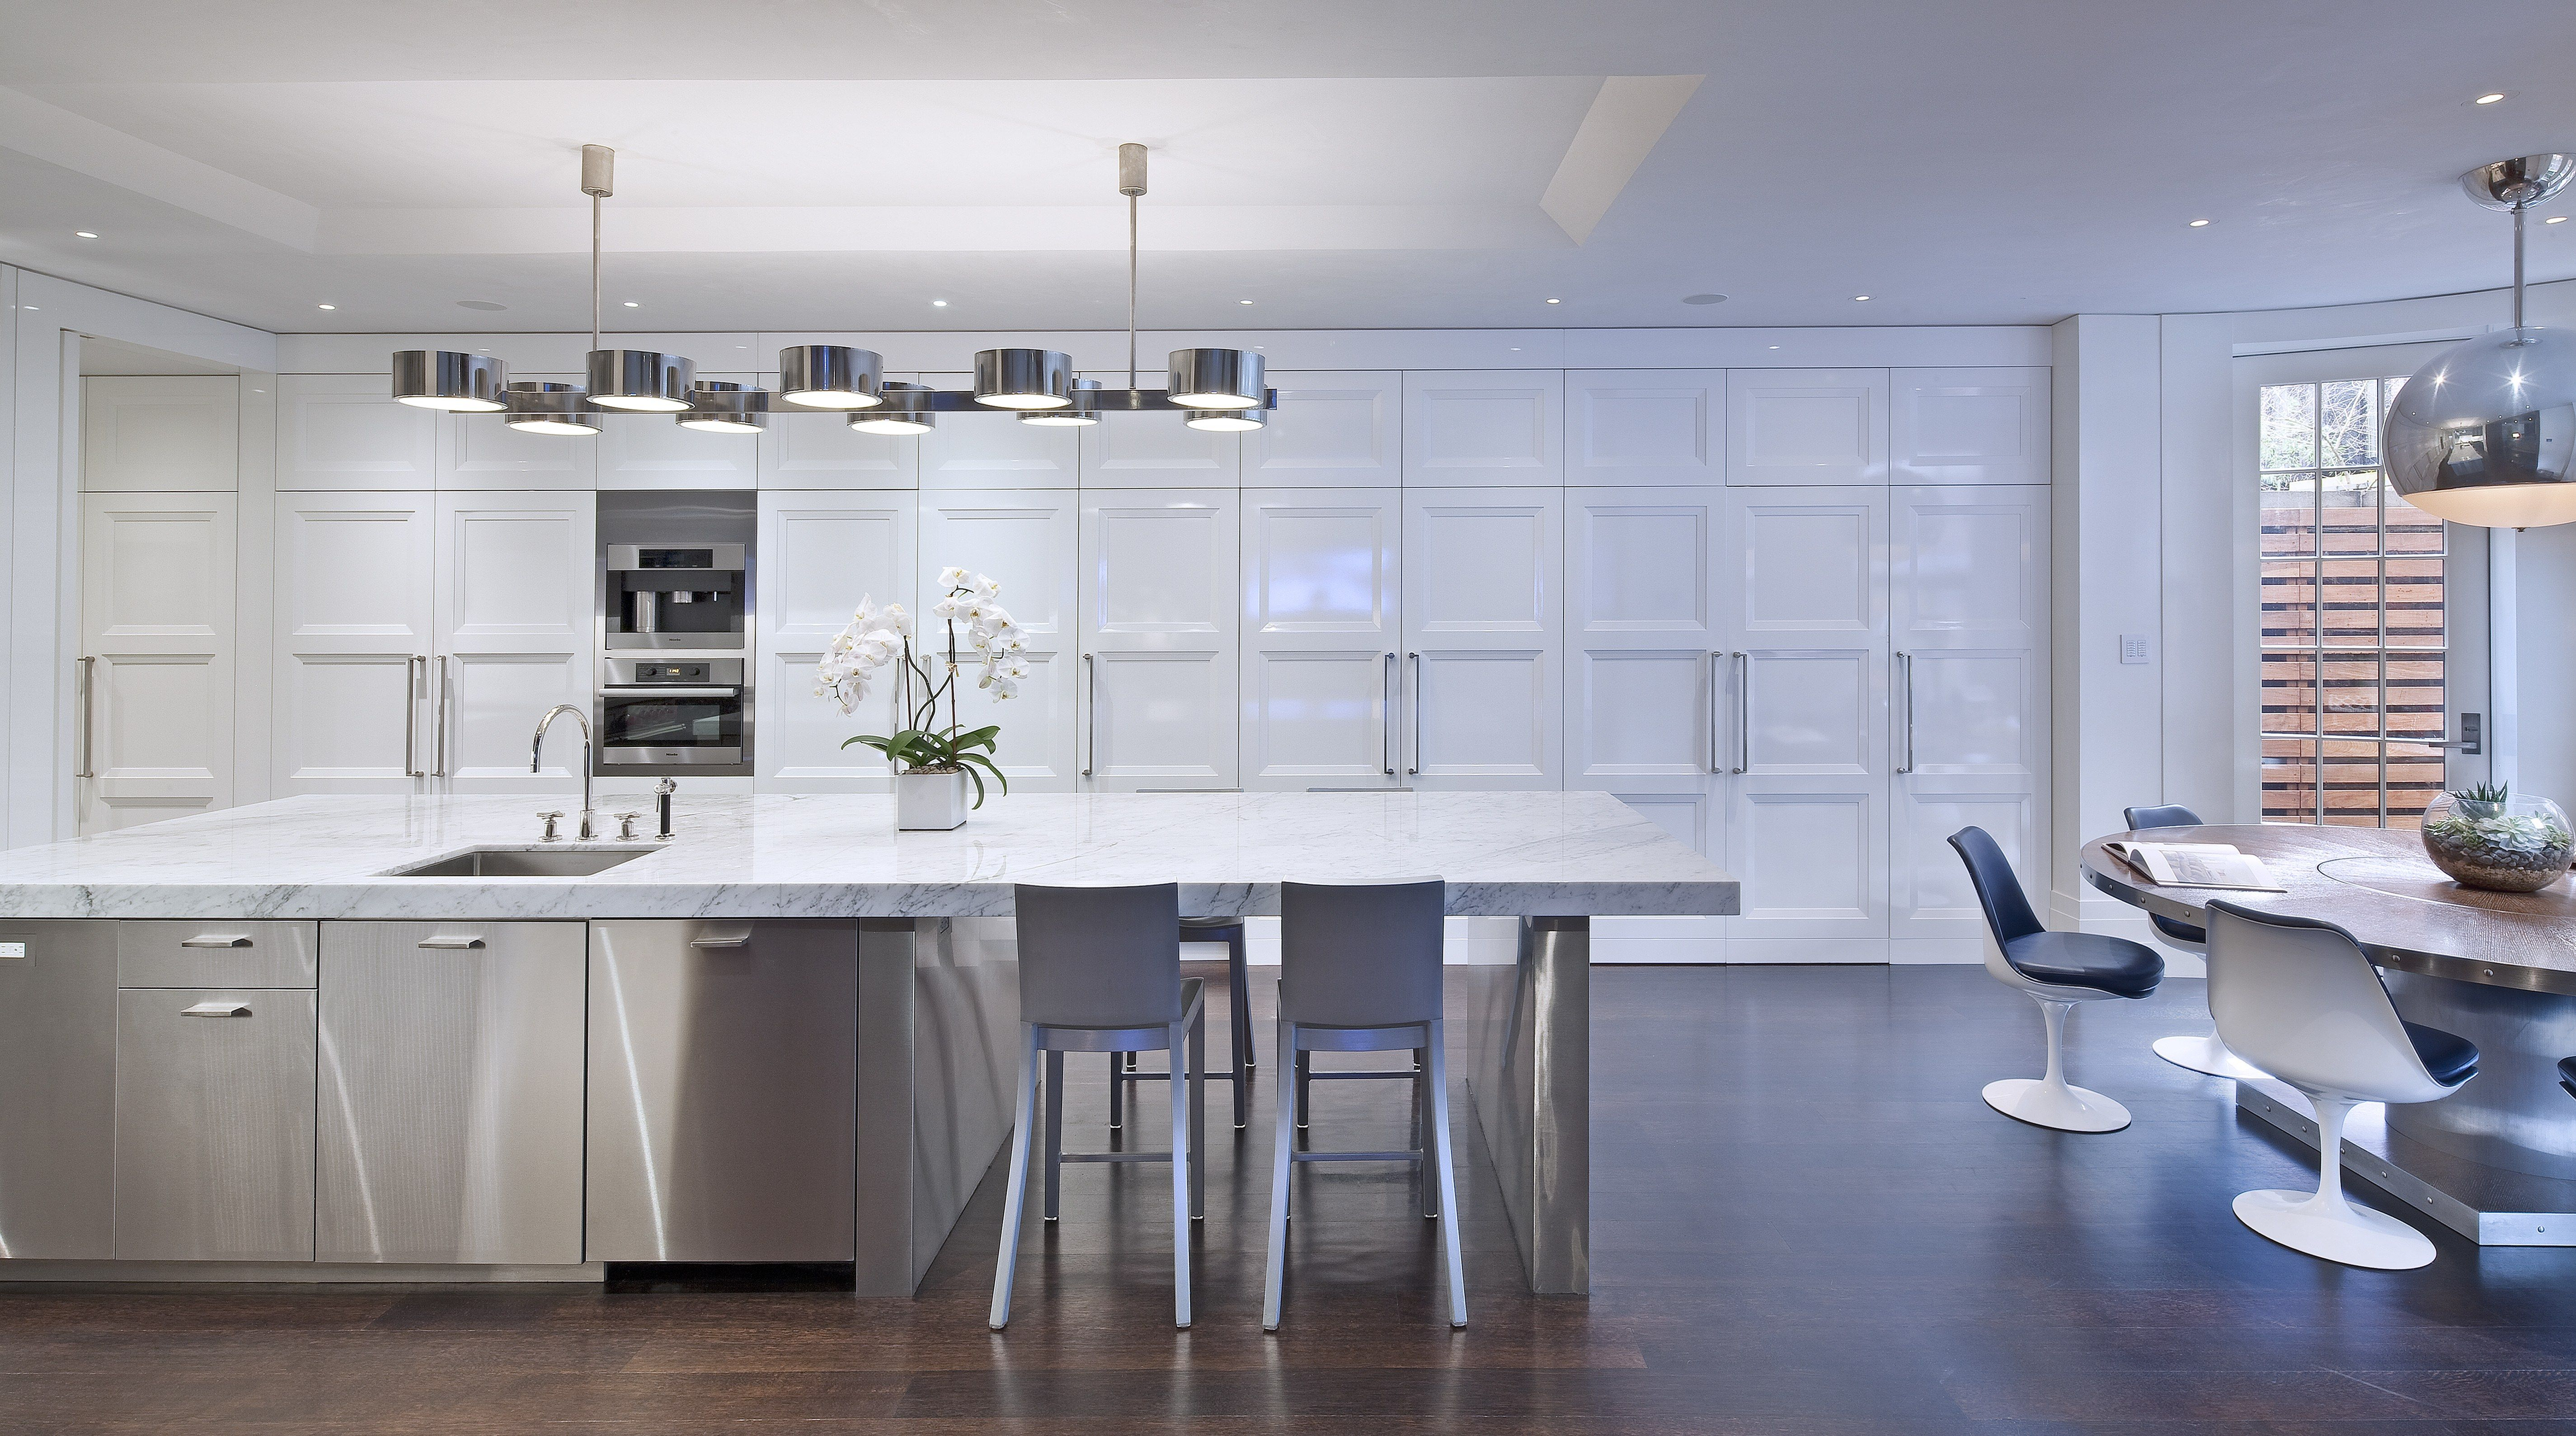 6 clever kitchen design ideas from st. charles of new york | kitchen